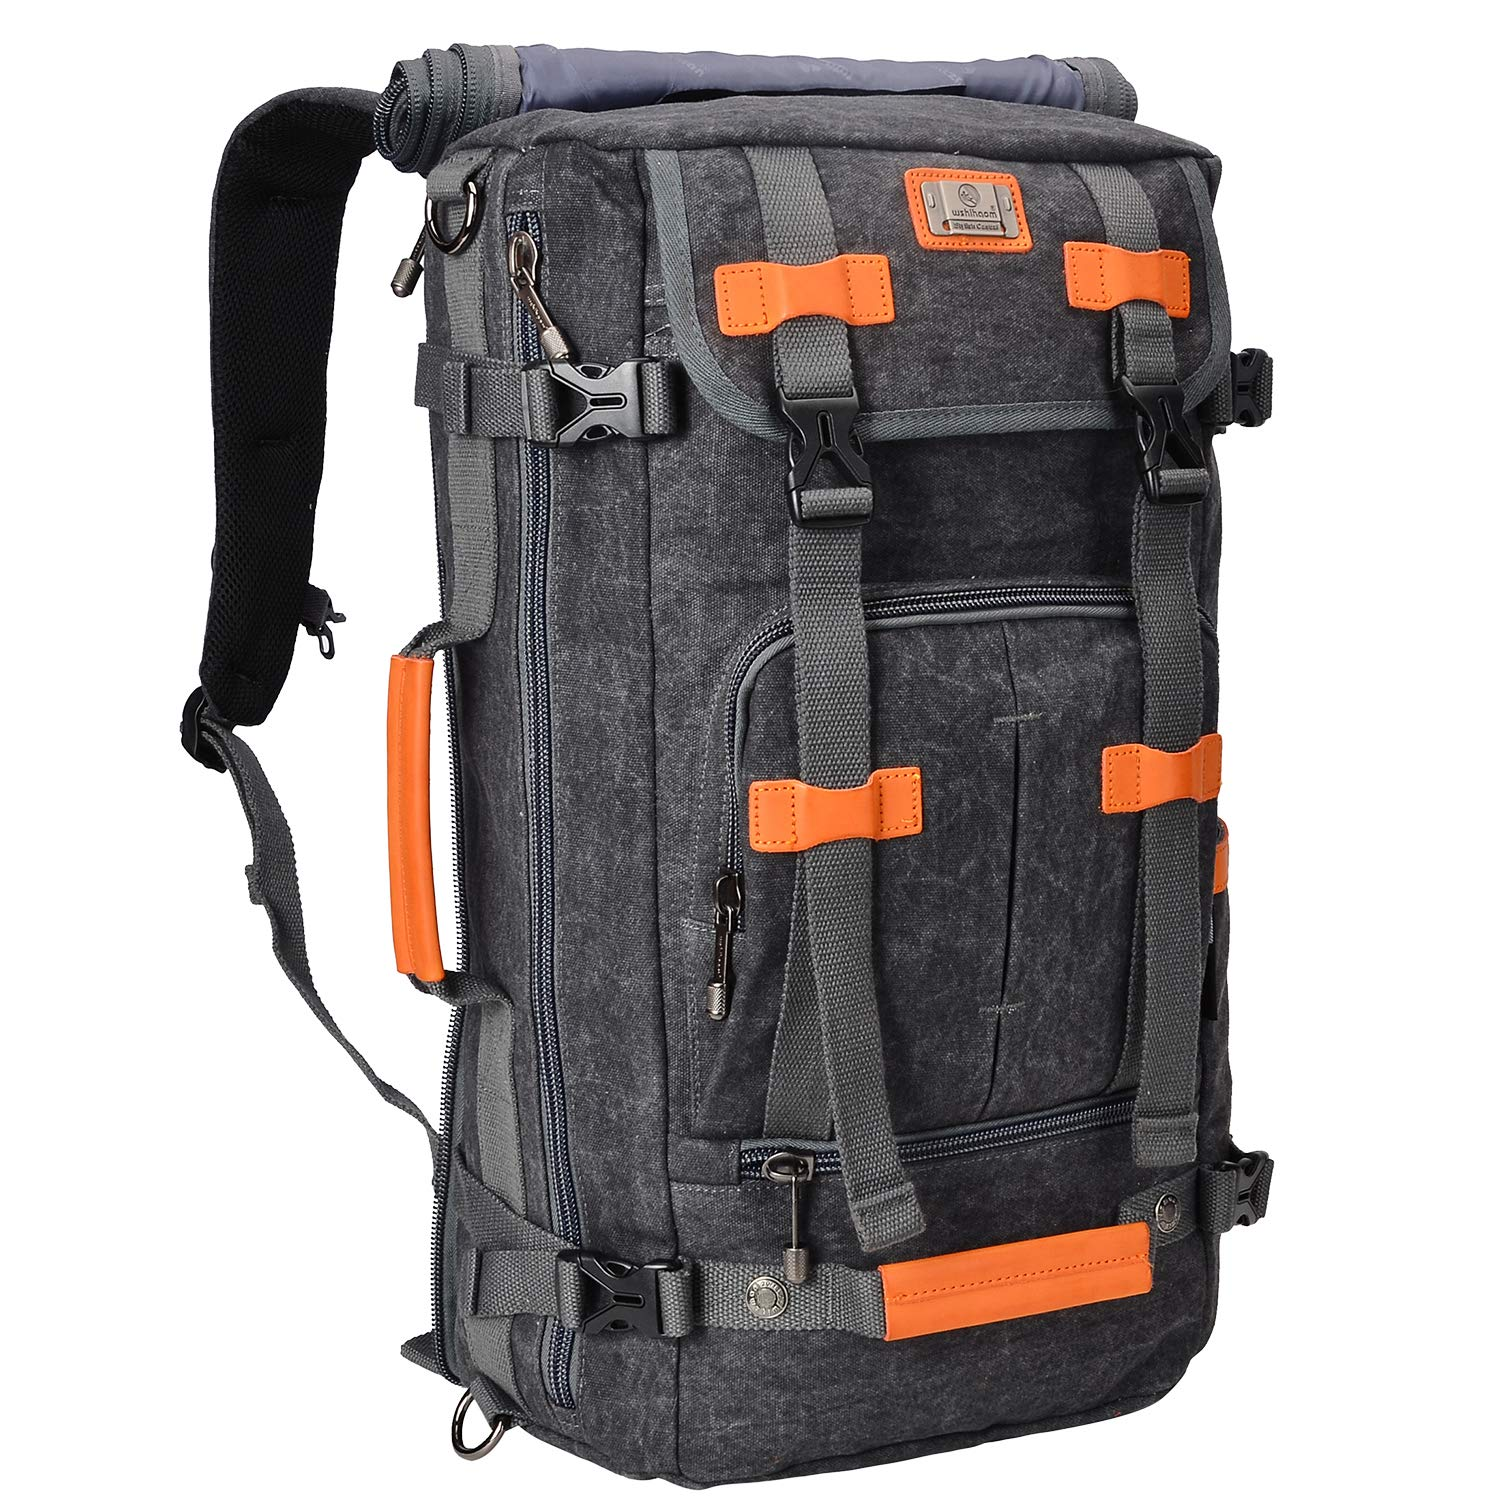 WITZMAN Canvas Backpack Vintage Travel Backpack Hiking Luggage Rucksack Laptop Bags A519 (22 inch black) by WITZMAN